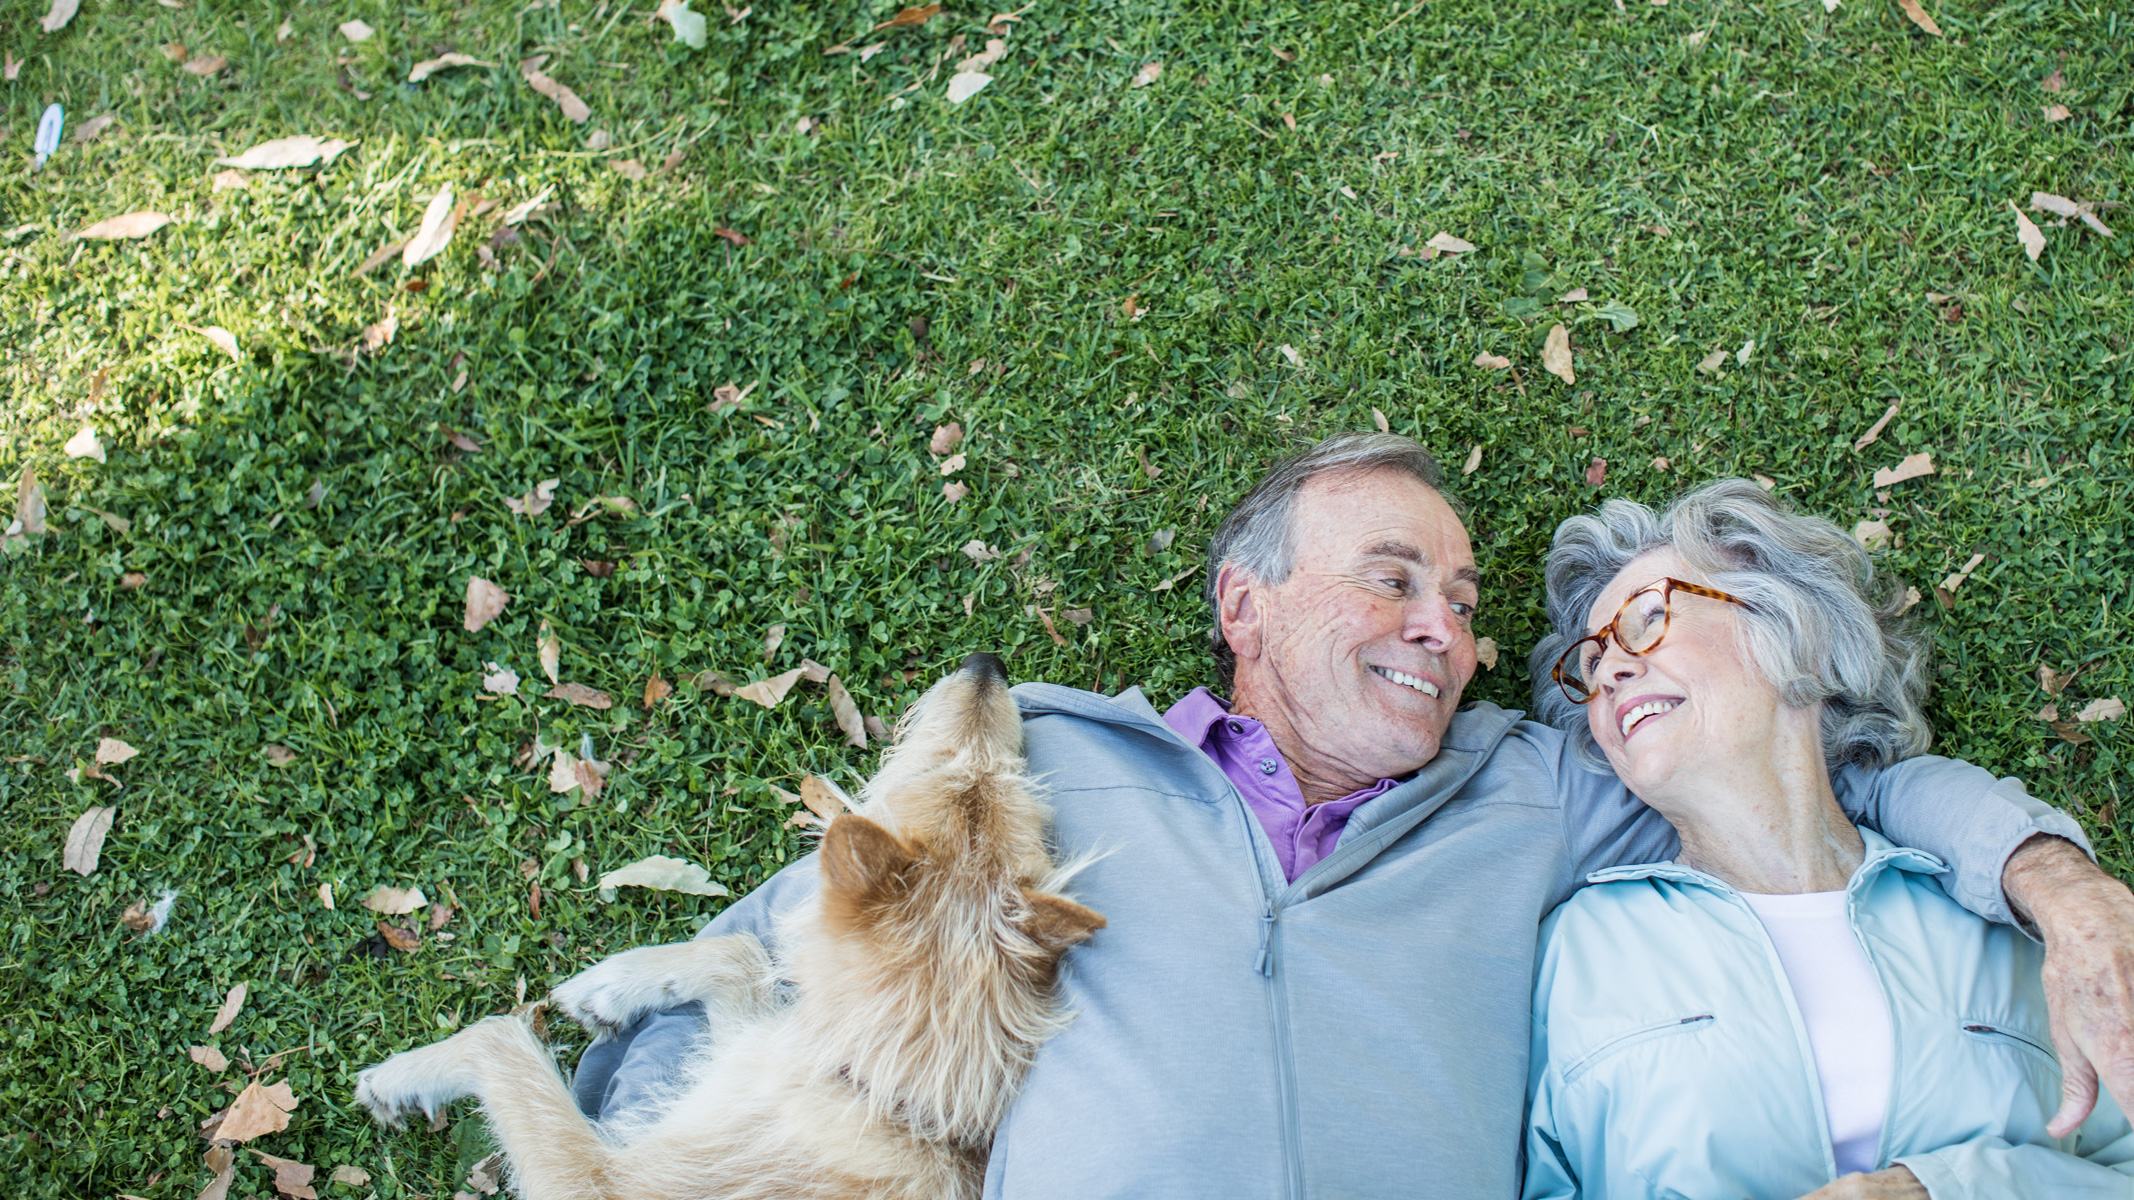 A man and a woman stare lovingly into each other's eyes as they lie in the grass with their dog by their side